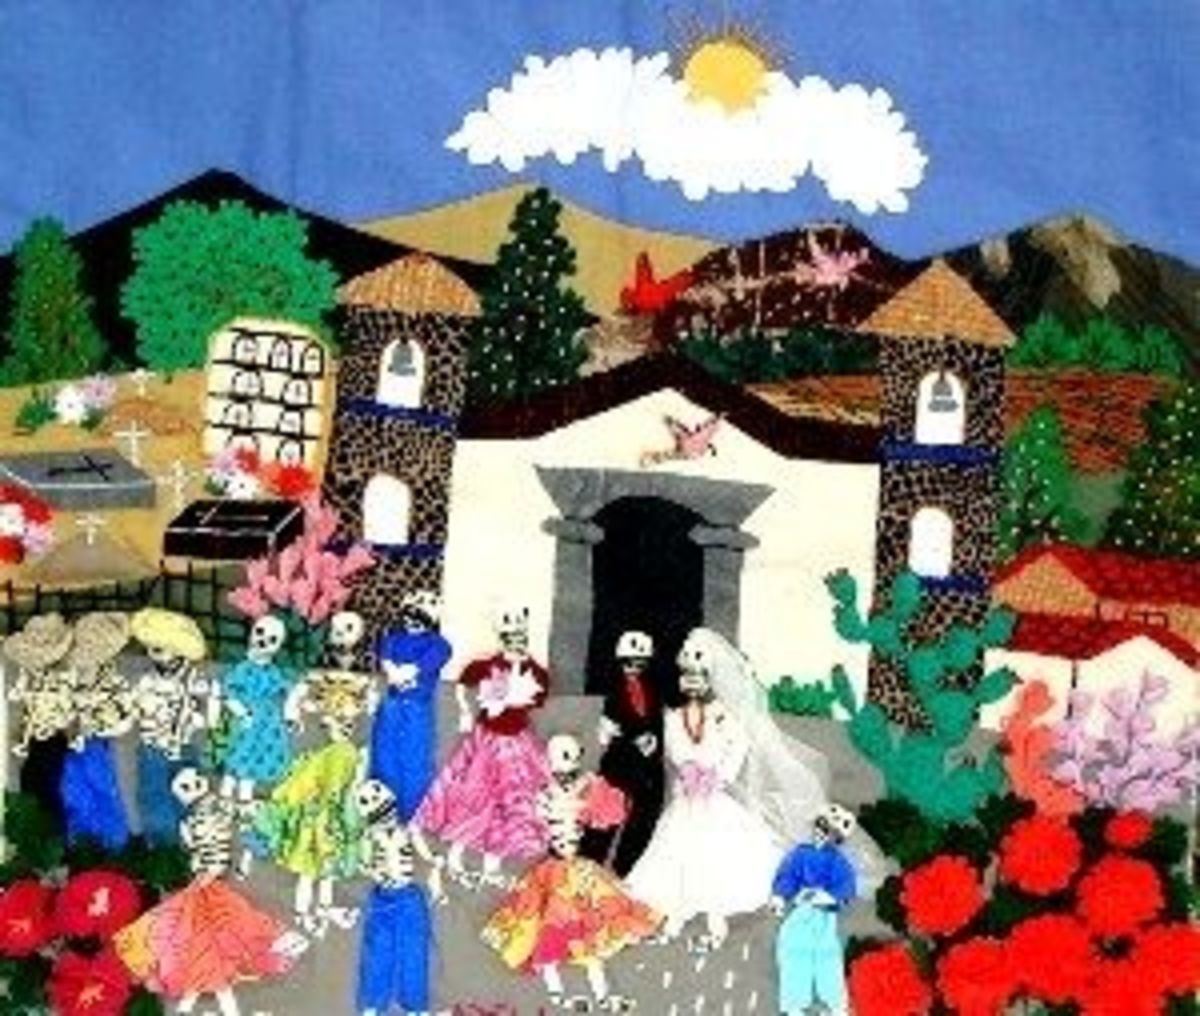 A village wedding is the subject of this arpillera